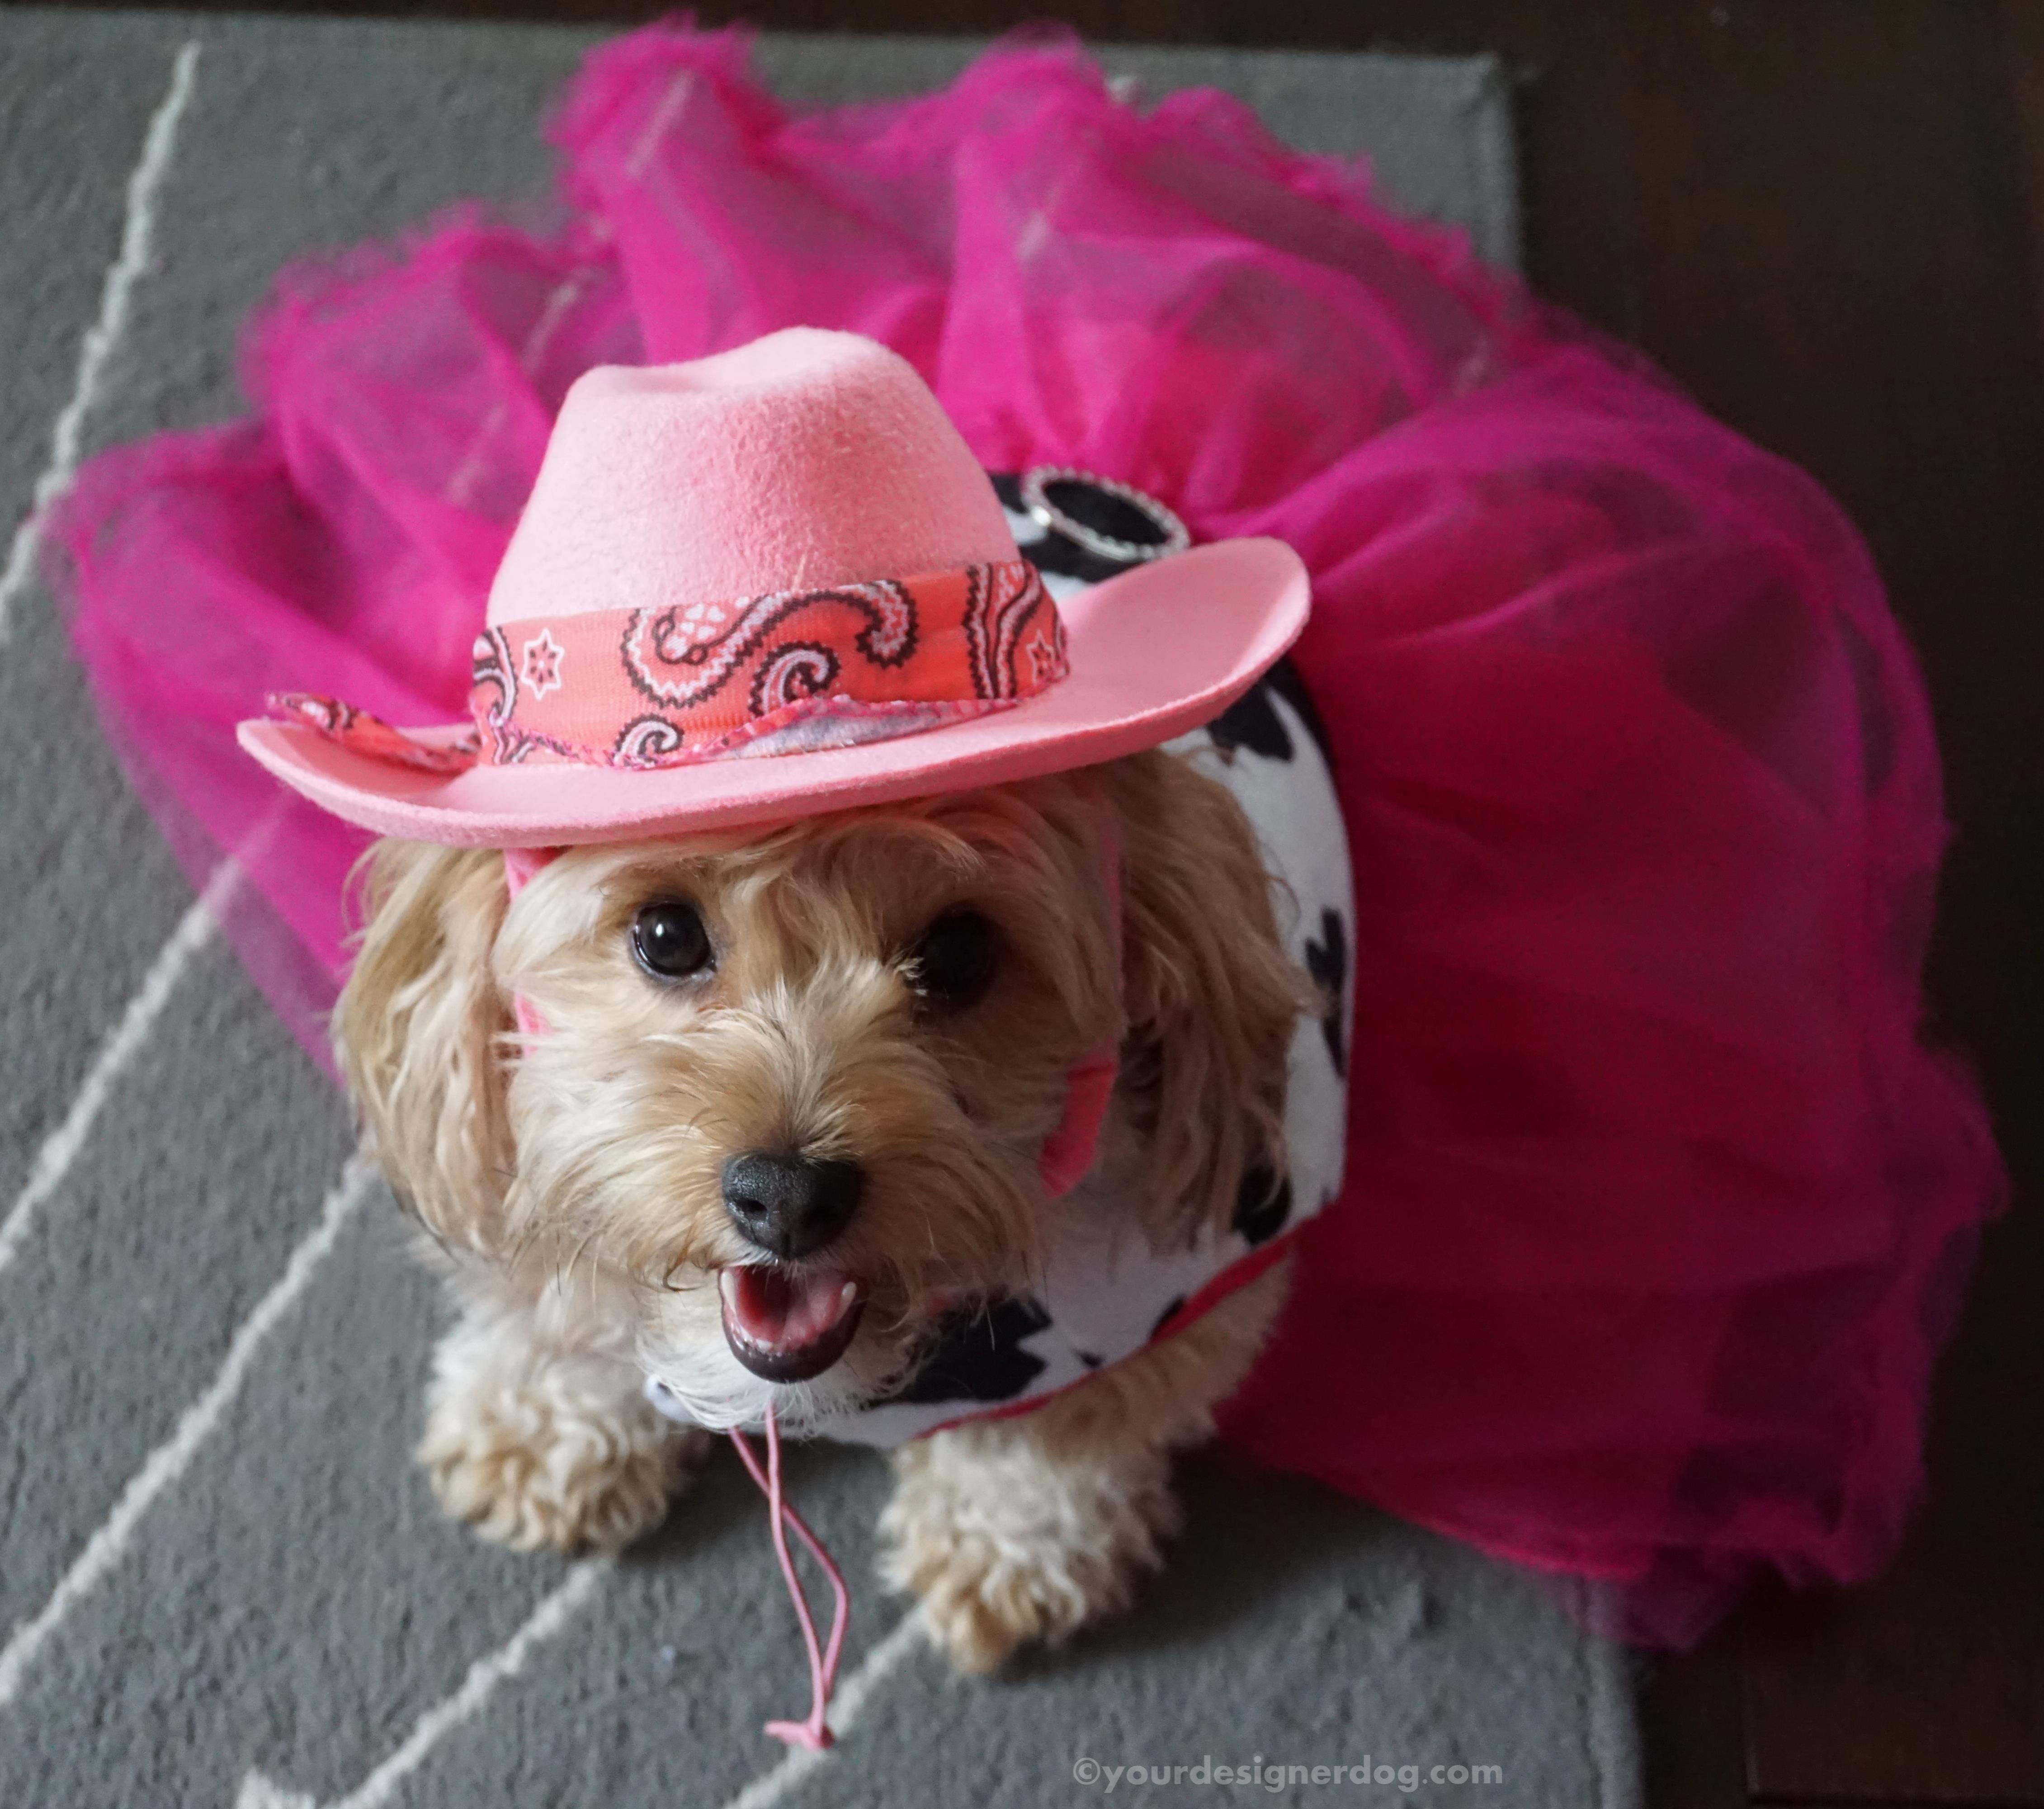 dogs, designer dogs, yorkipoo, yorkie poo, cowboy, cowgirl, tongue out, cowboy hat